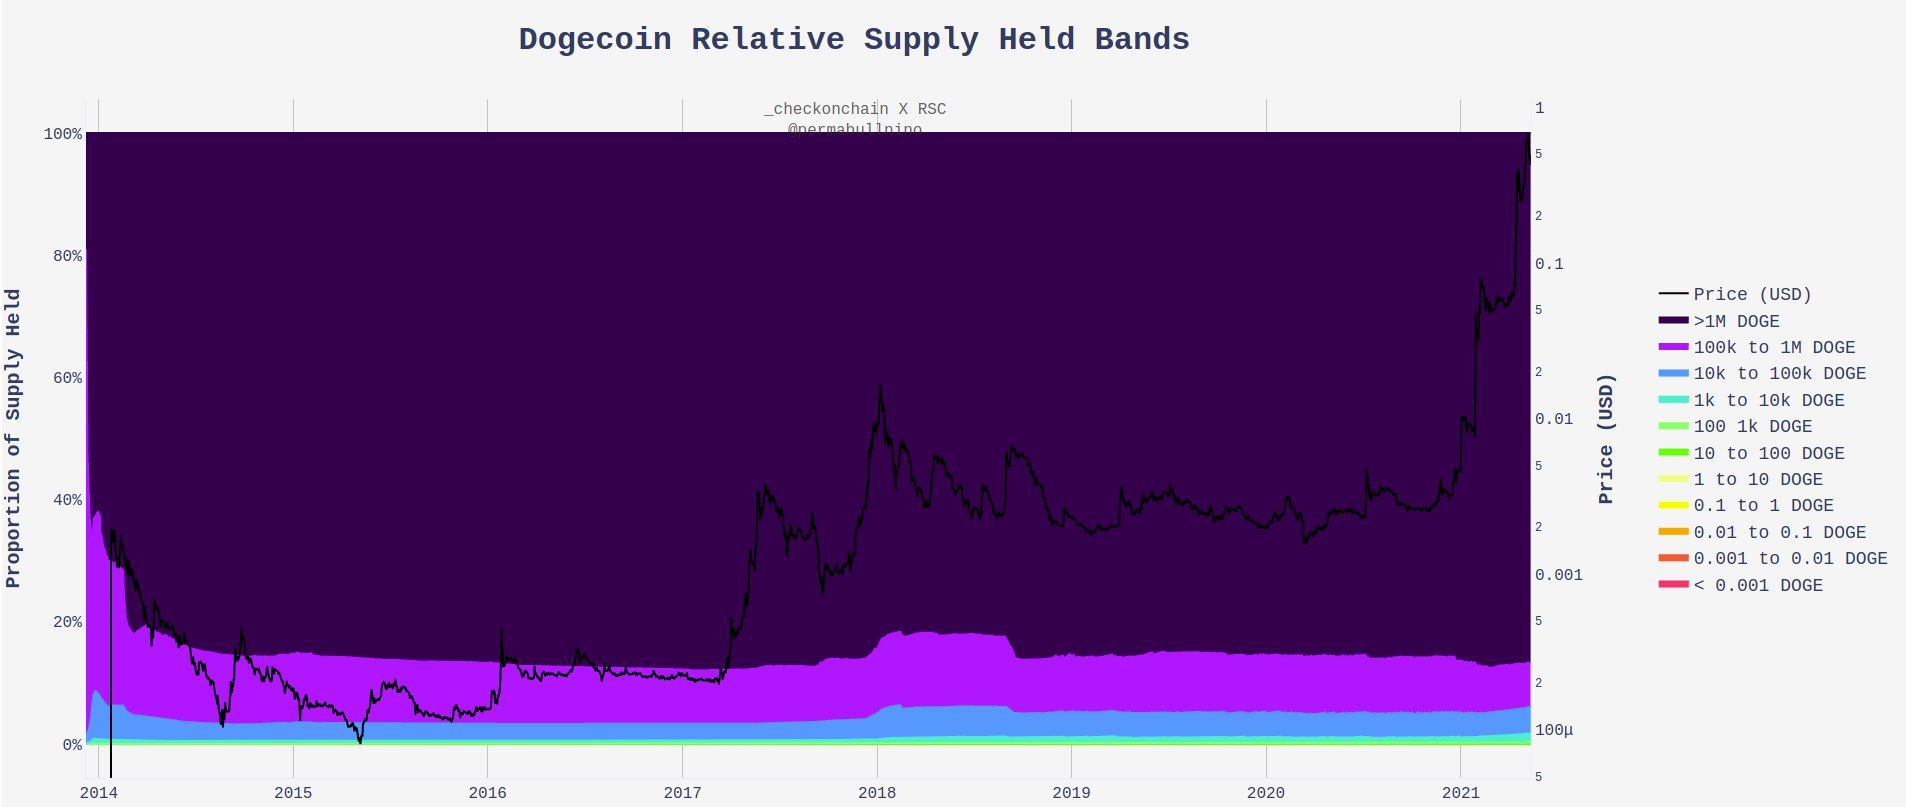 Dogecoin relative supply held bands.